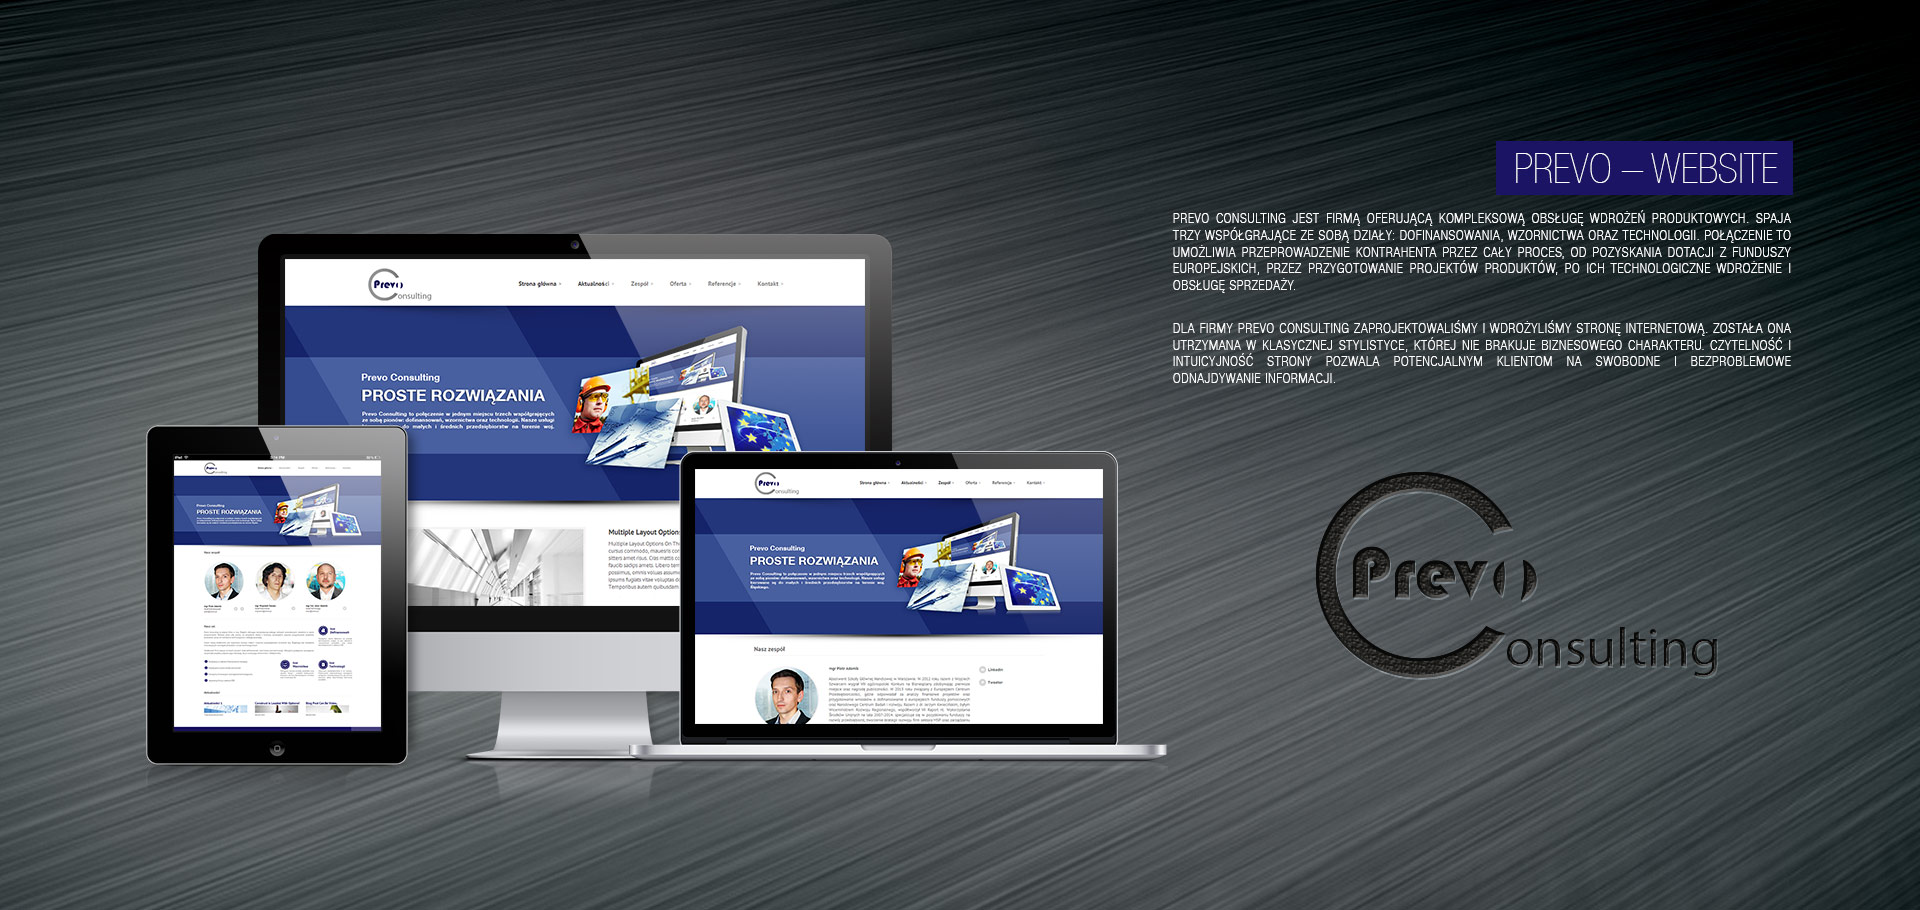 Prevo consulting website for Consulting website